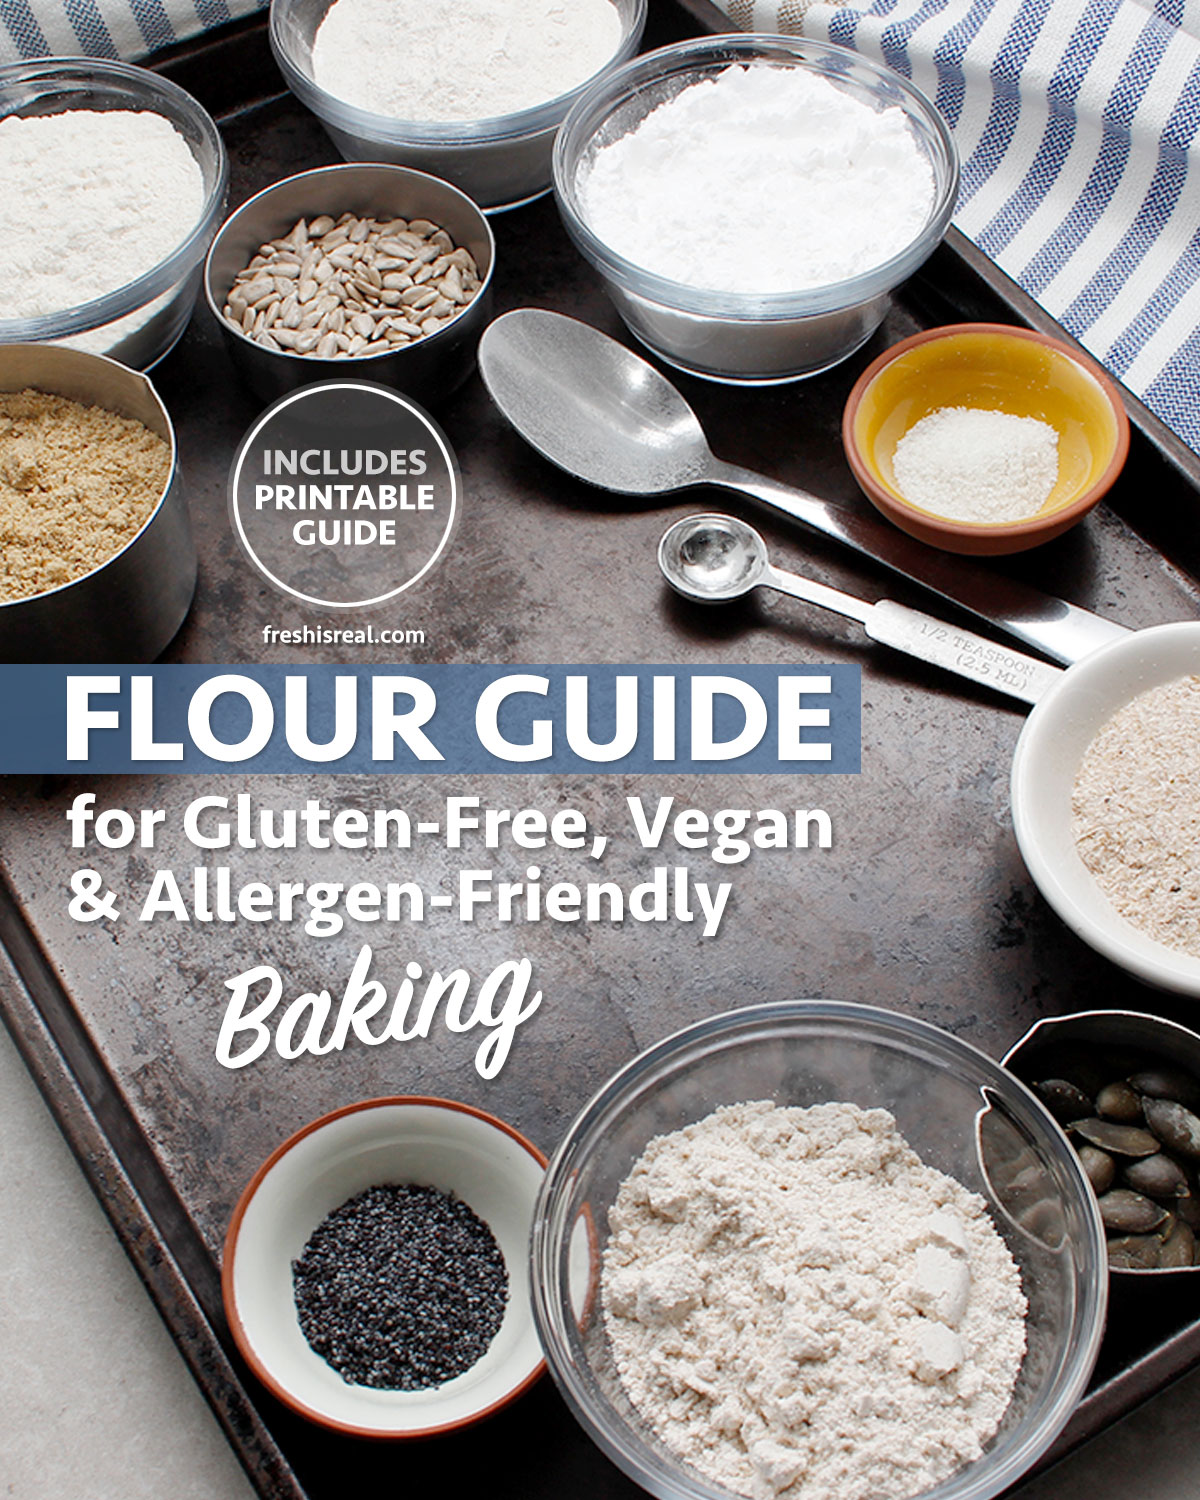 Gluten-free, vegan and allergen-friendly baking ingredients and flour guide. freshisreal.com